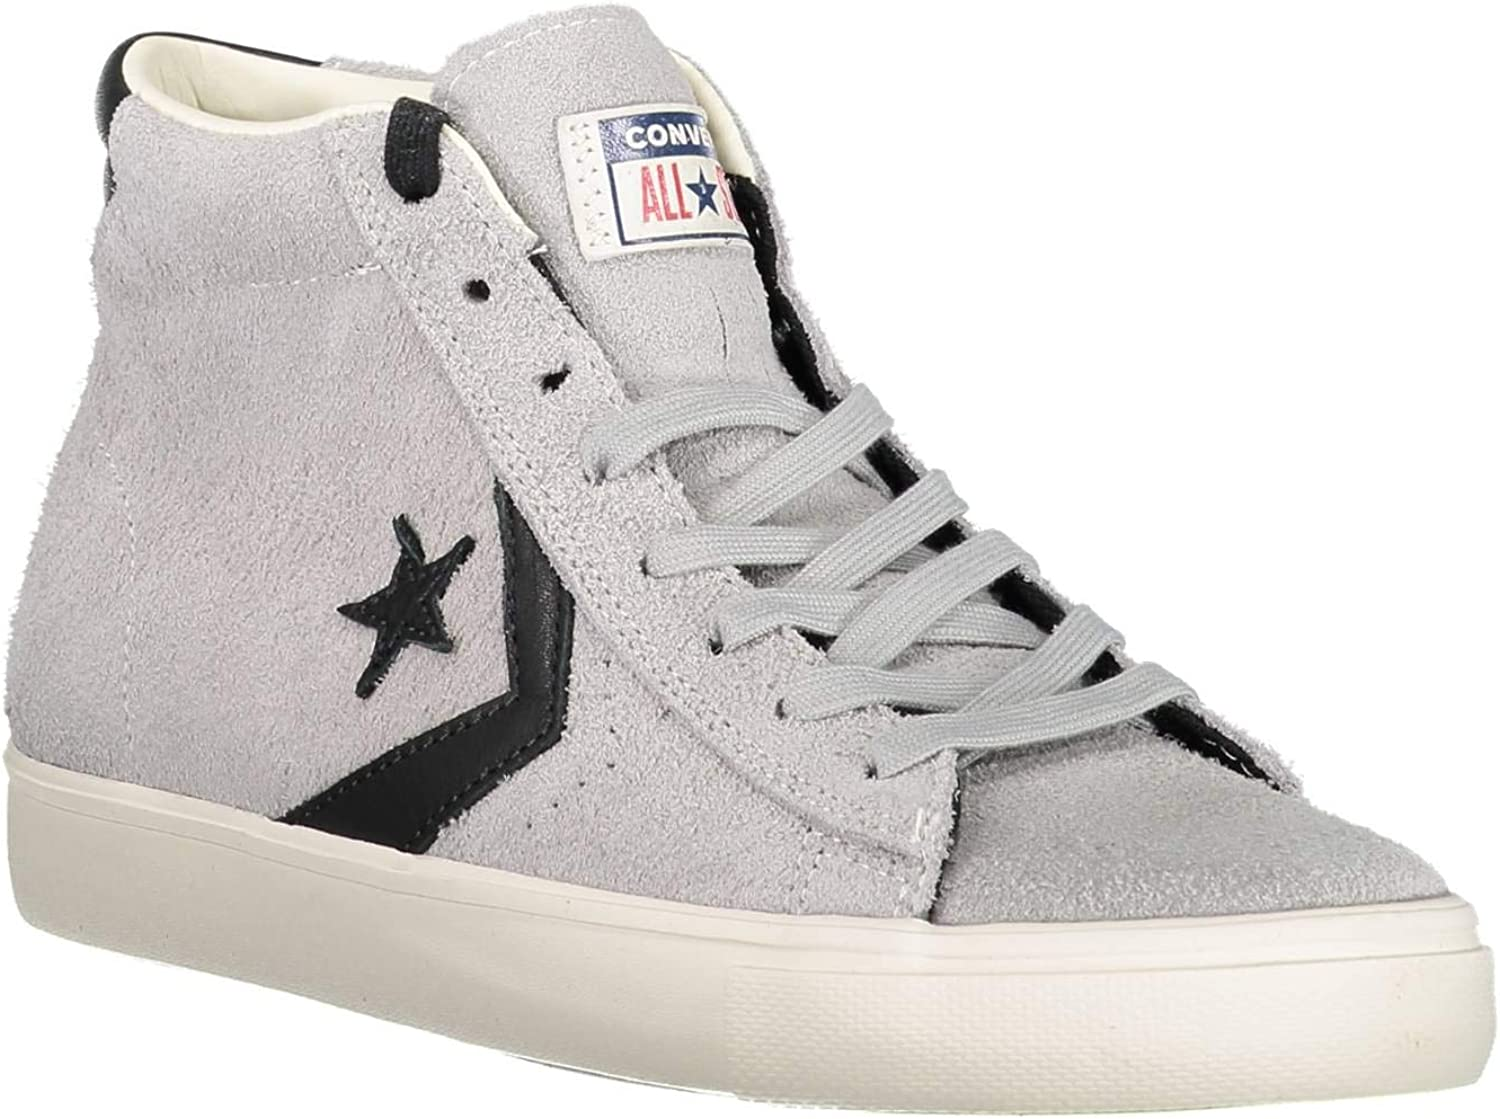 Converse Adults' Lifestyle Pro Leather Vulc Mid Low-Top Sneakers, Multicolour (Ghost Grey Black Turtledove 020), 9 UK